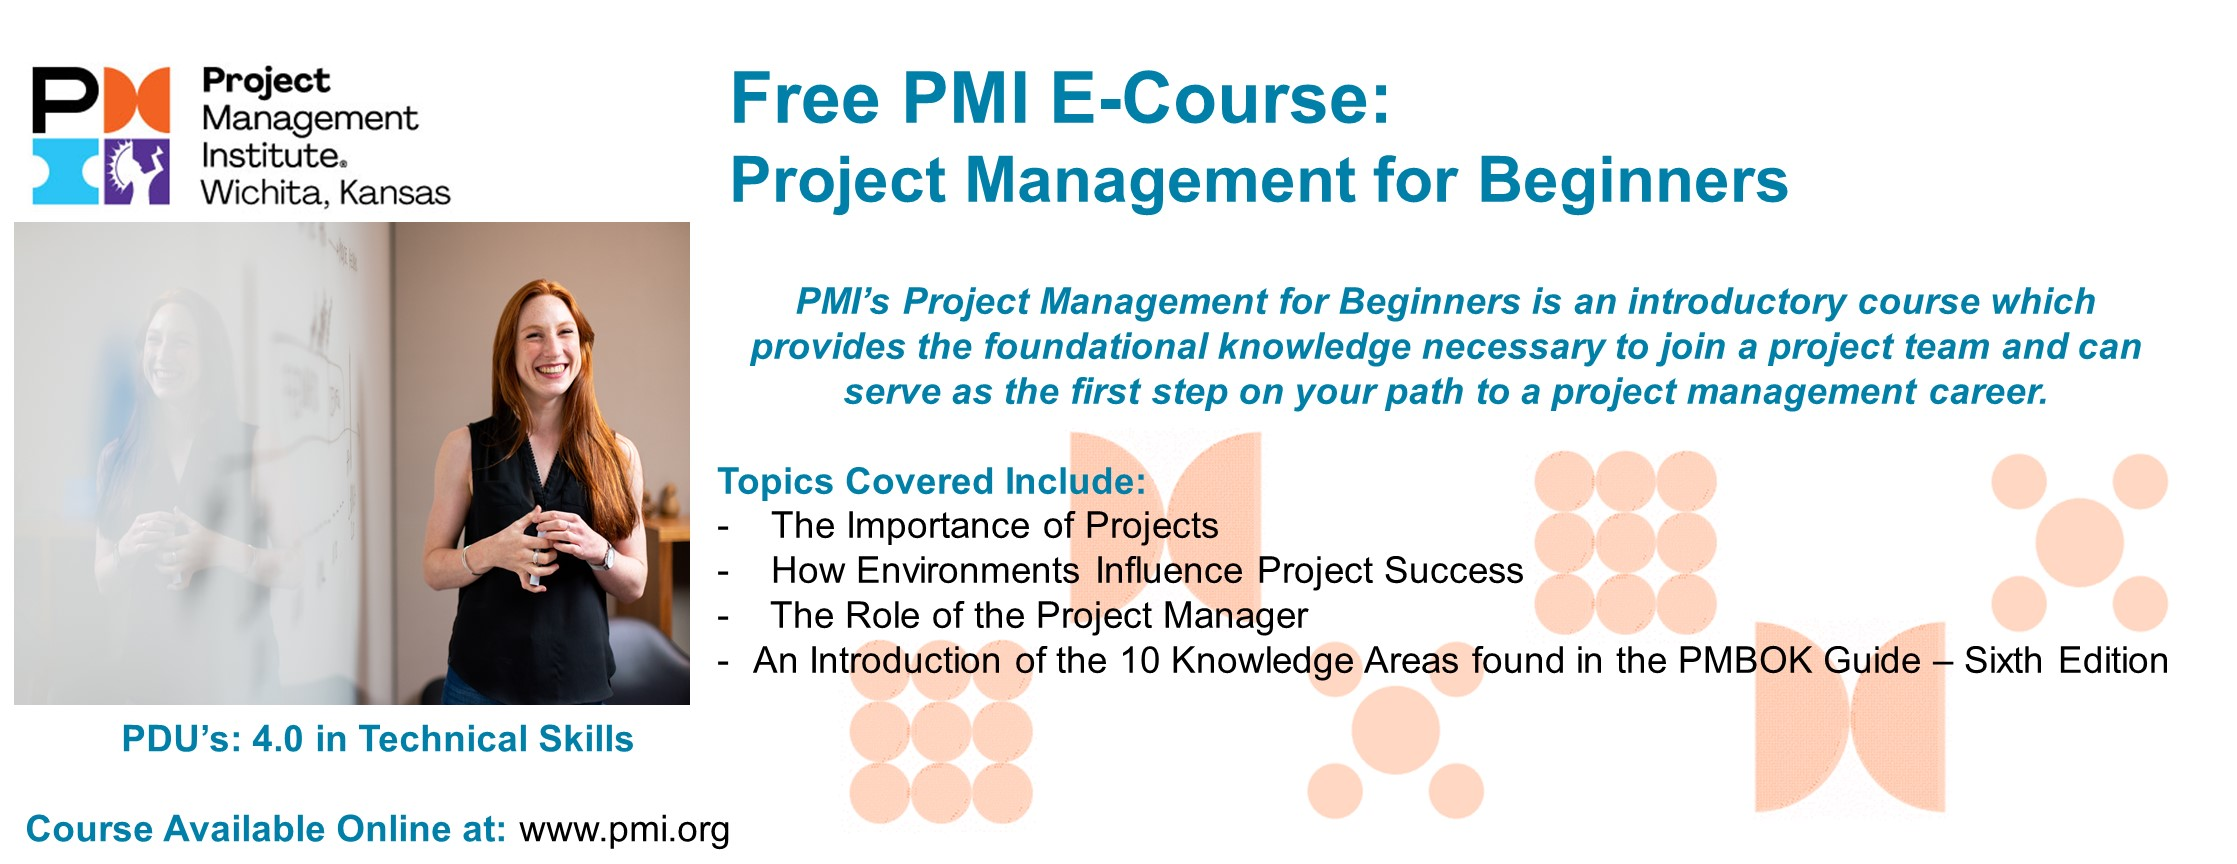 Project Management for Beginners E Course Website Landing